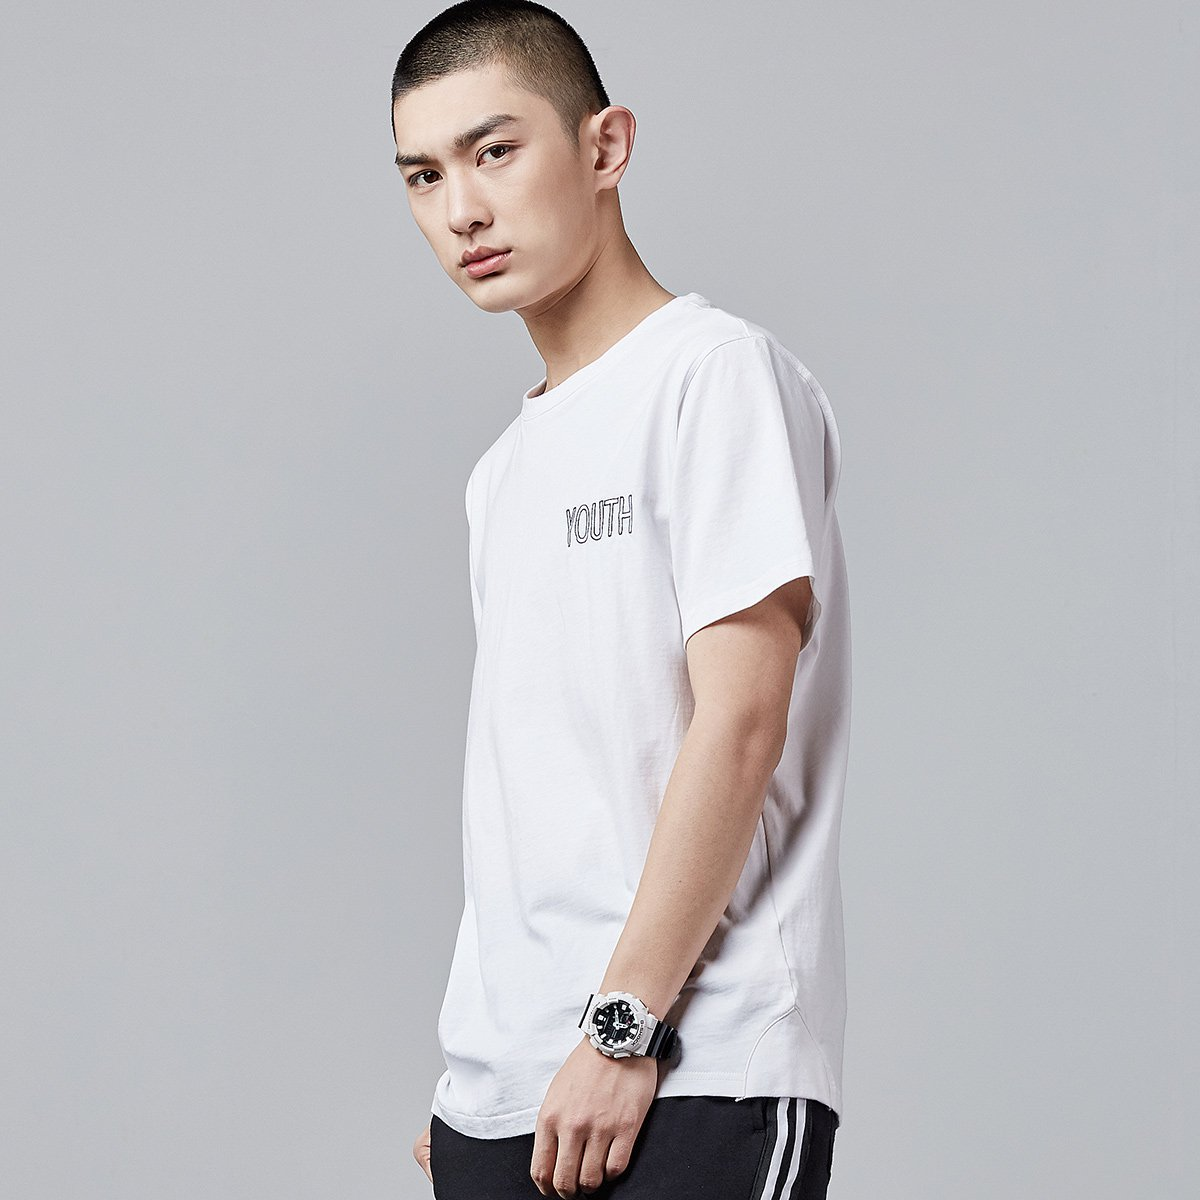 super soft cotton men tshirts white  and black color design  embroidery logo  tshirt